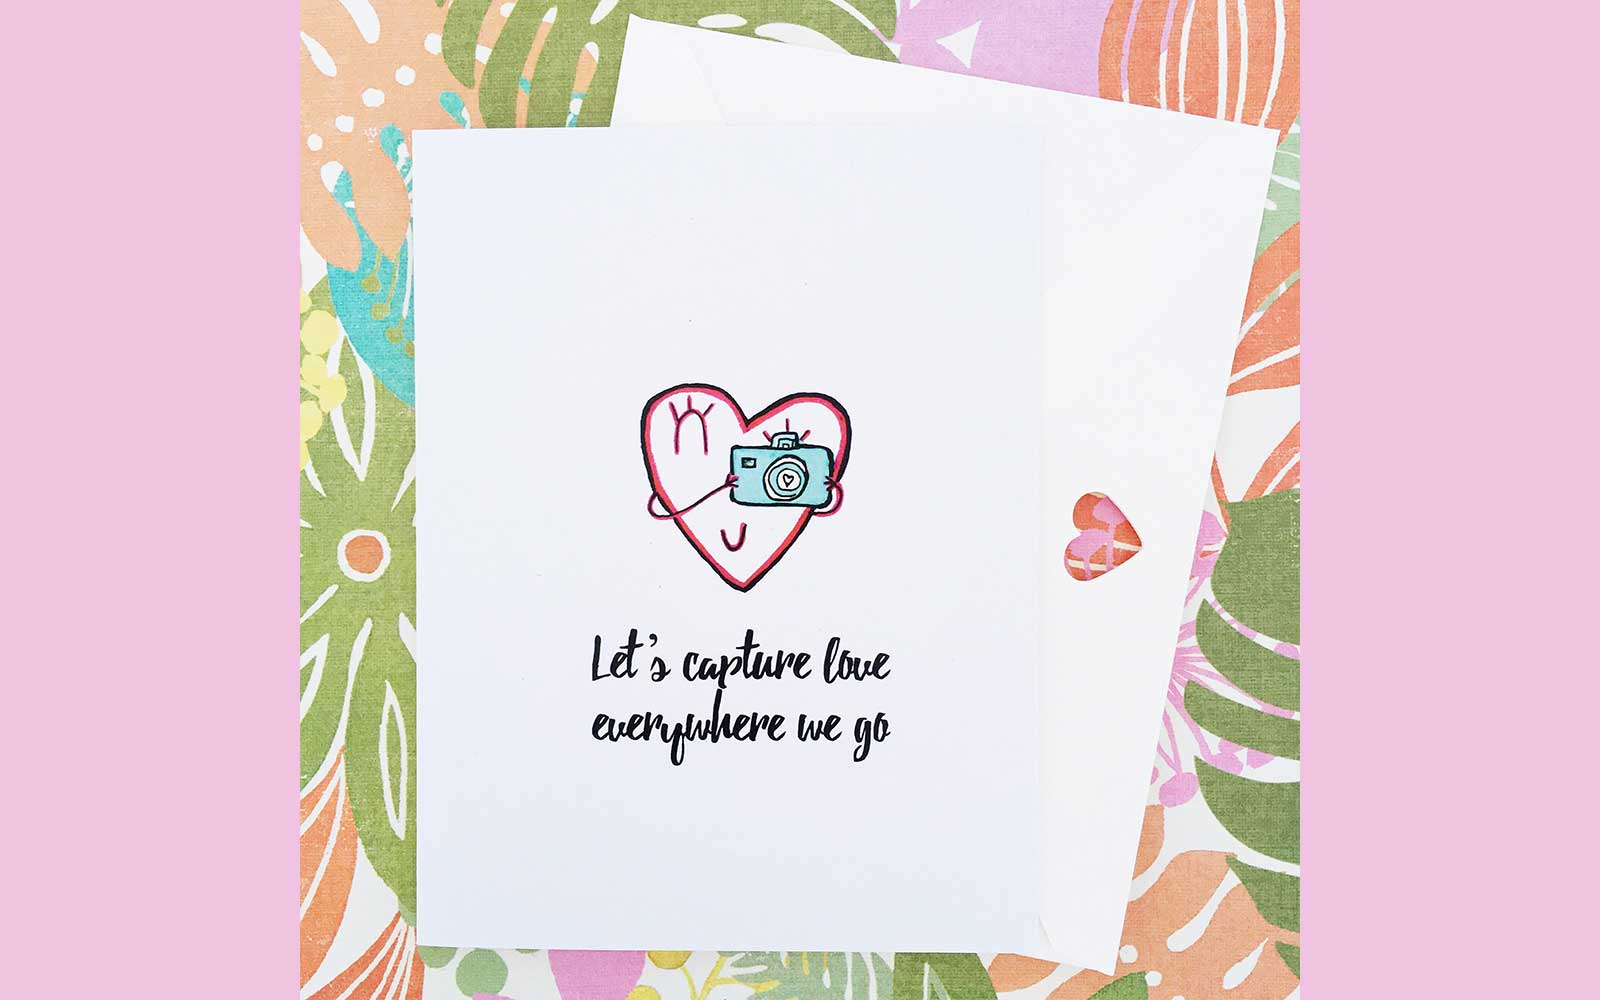 """Let's capture love everywhere we go"" Valentine card"